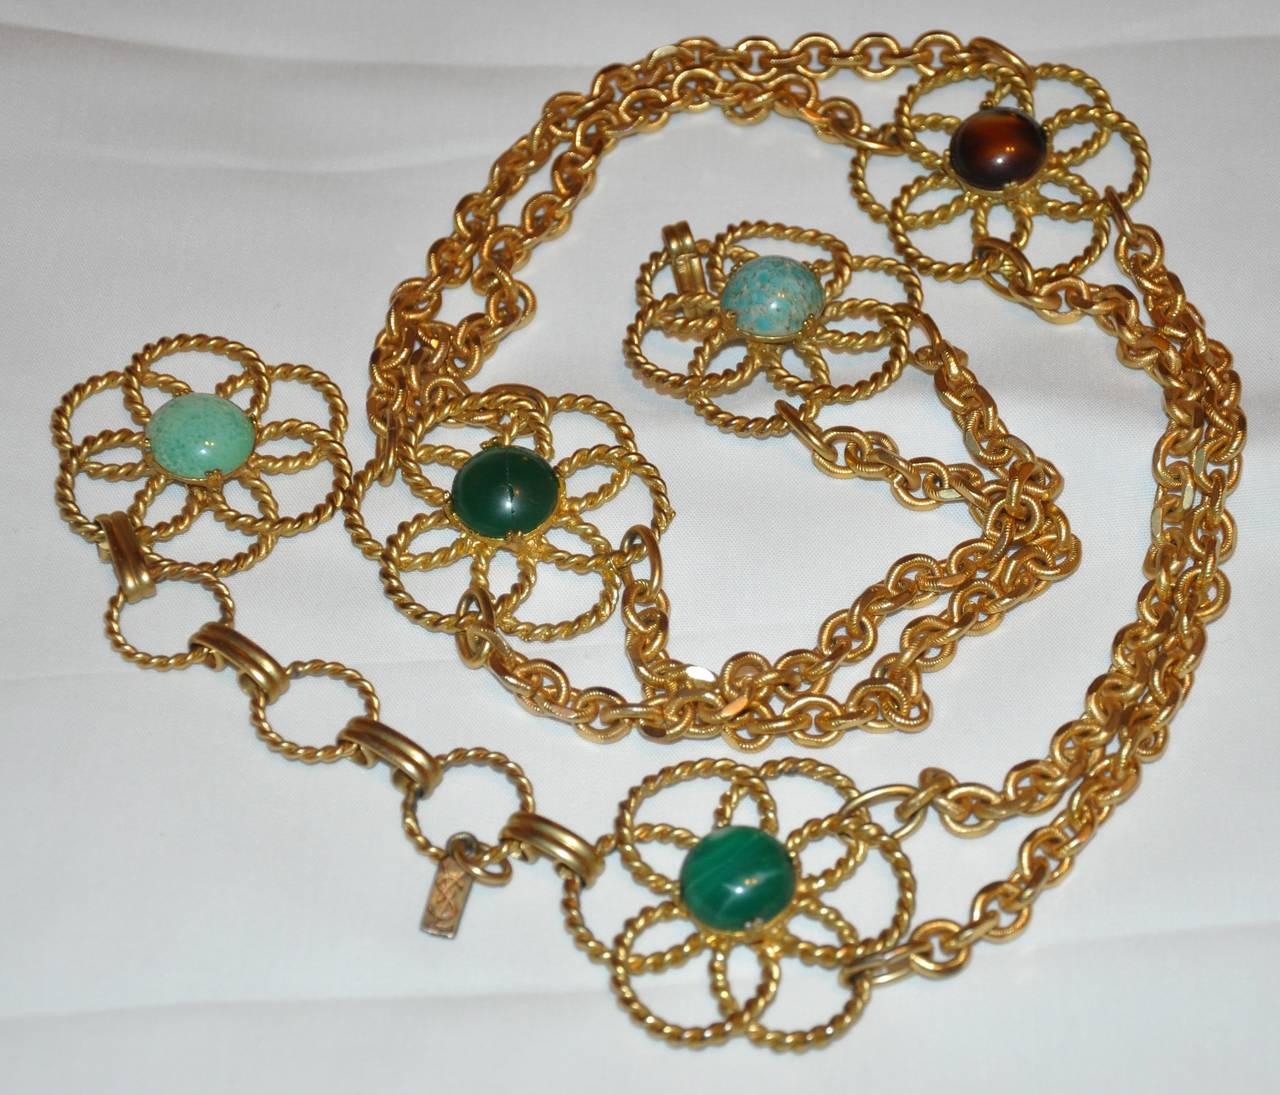 Brown Rare Yves Saint Laurent Multi-Stone & Gold Hardware Chain-Link Belt For Sale